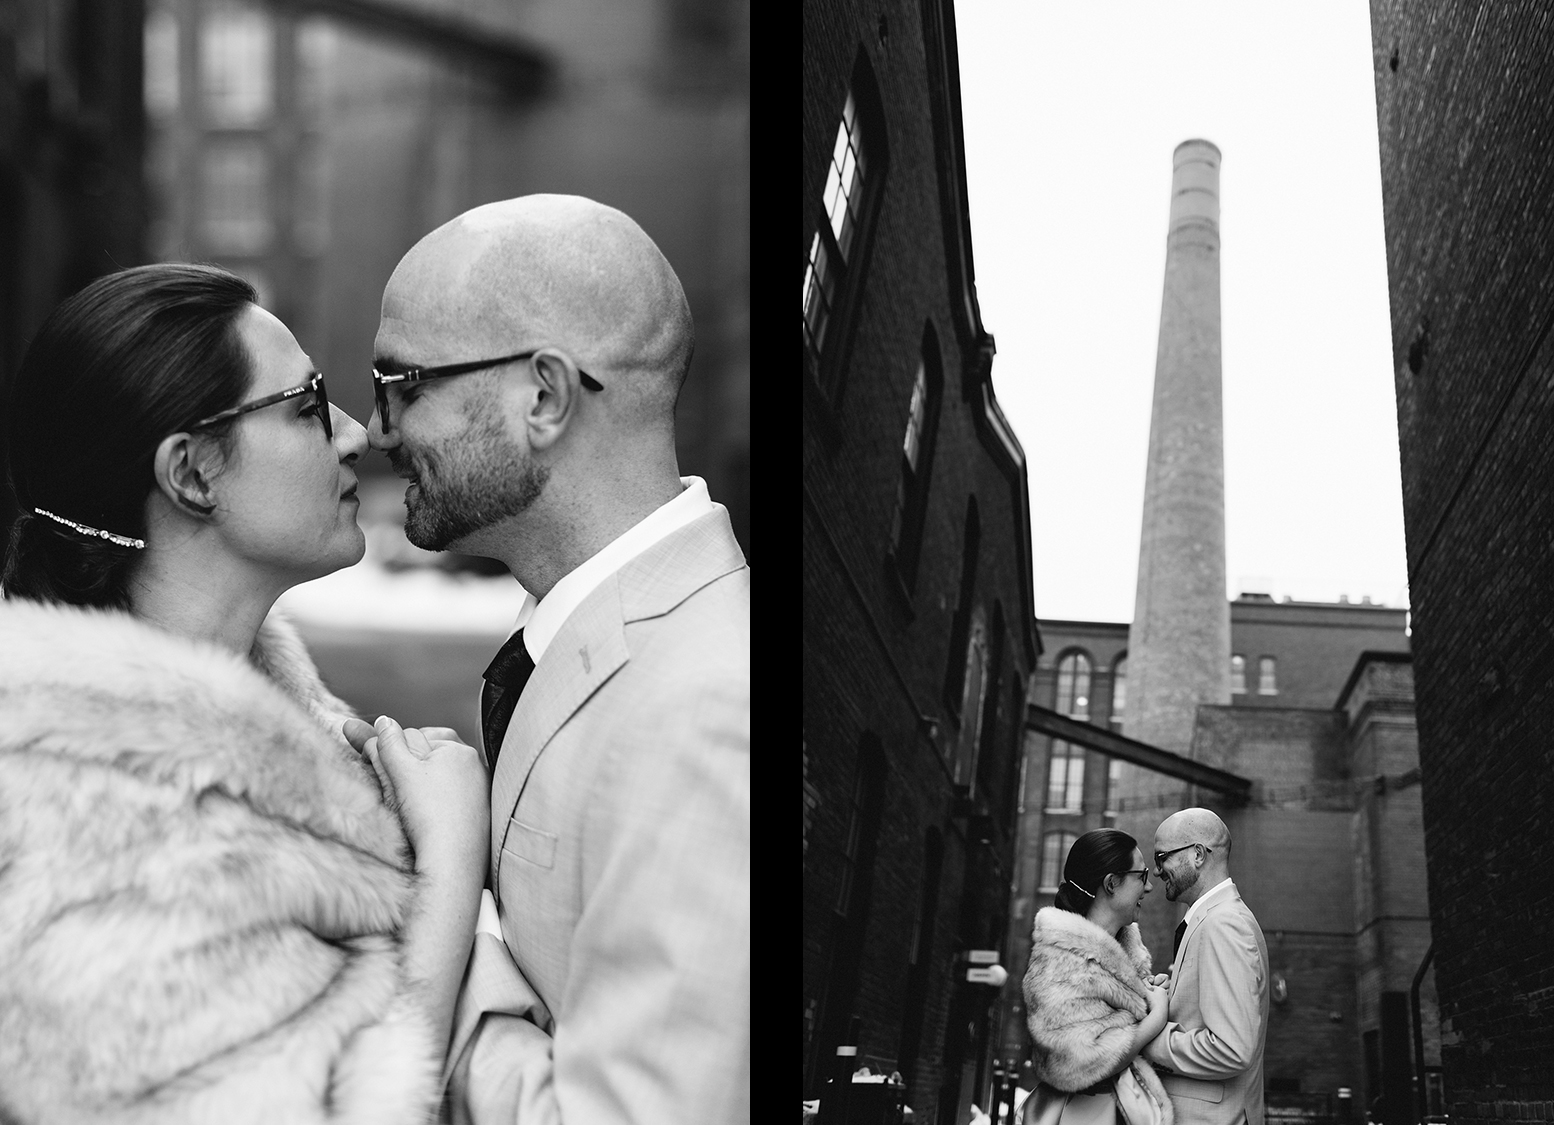 15-couples-portraits-liberty-village-real-wedding-toronto-wedding-photographer-alternative-unique-couple-analog-film-candid-documentary-moments-old-toronto-15.jpg